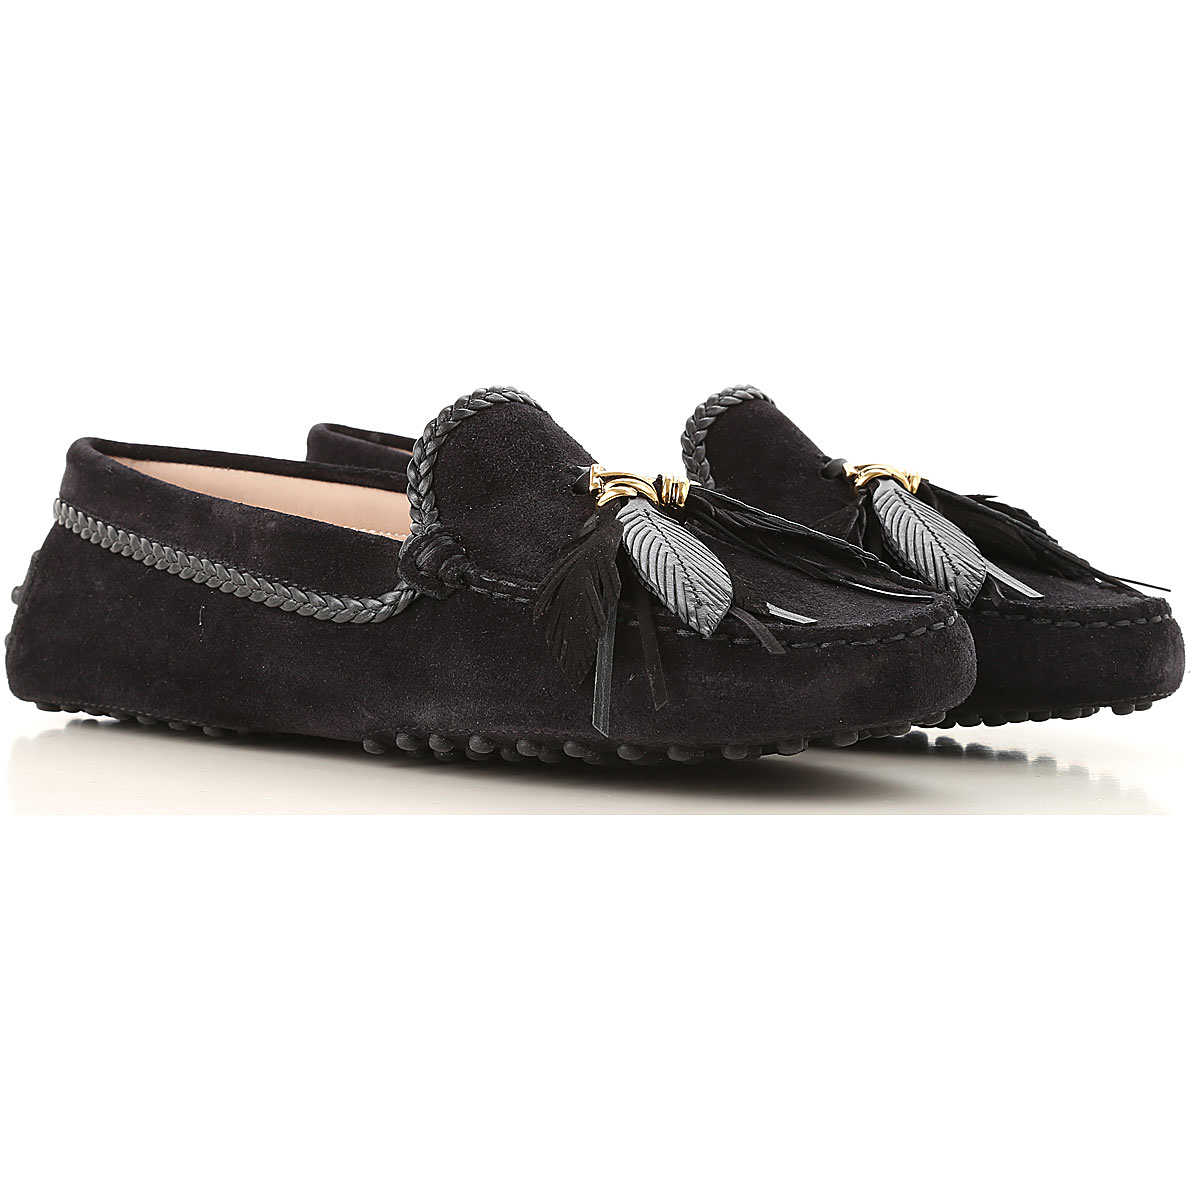 Tods Loafers for Women On Sale Dark Blue Navy DK - GOOFASH - Womens FLAT SHOES